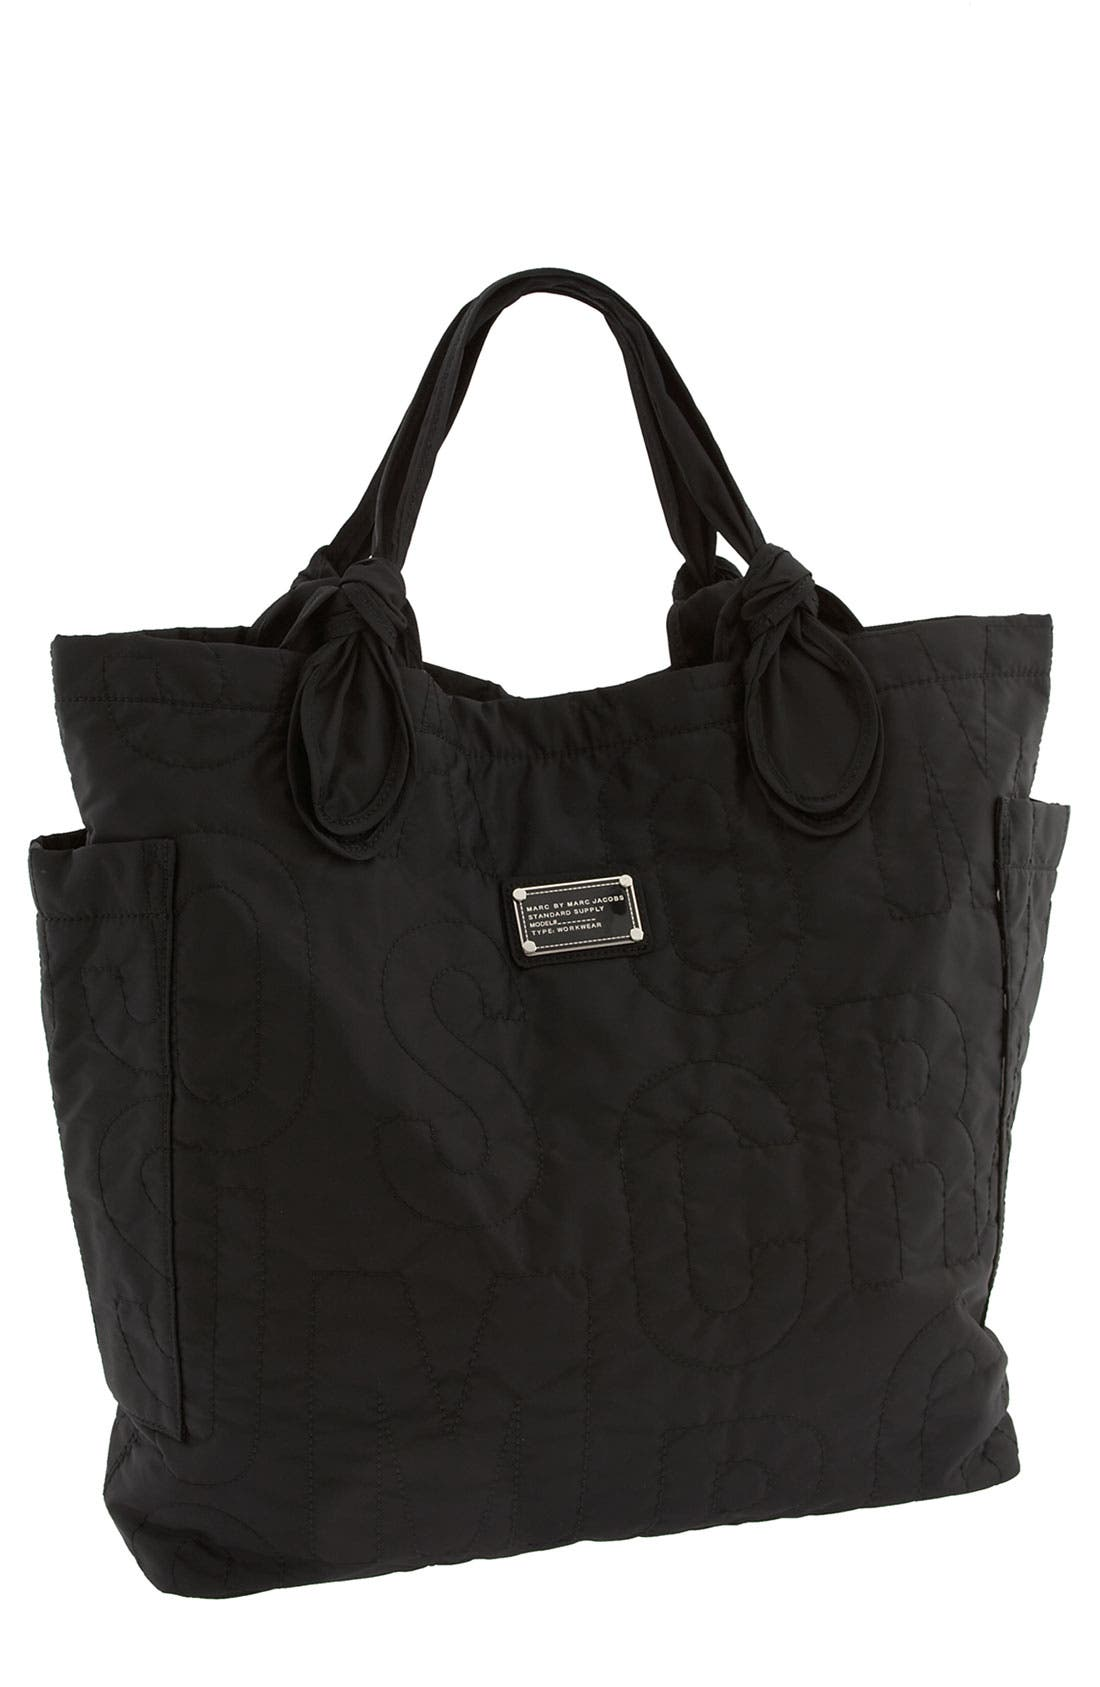 Alternate Image 1 Selected - MARC BY MARC JACOBS 'Pretty Nylon - Tate' Tote